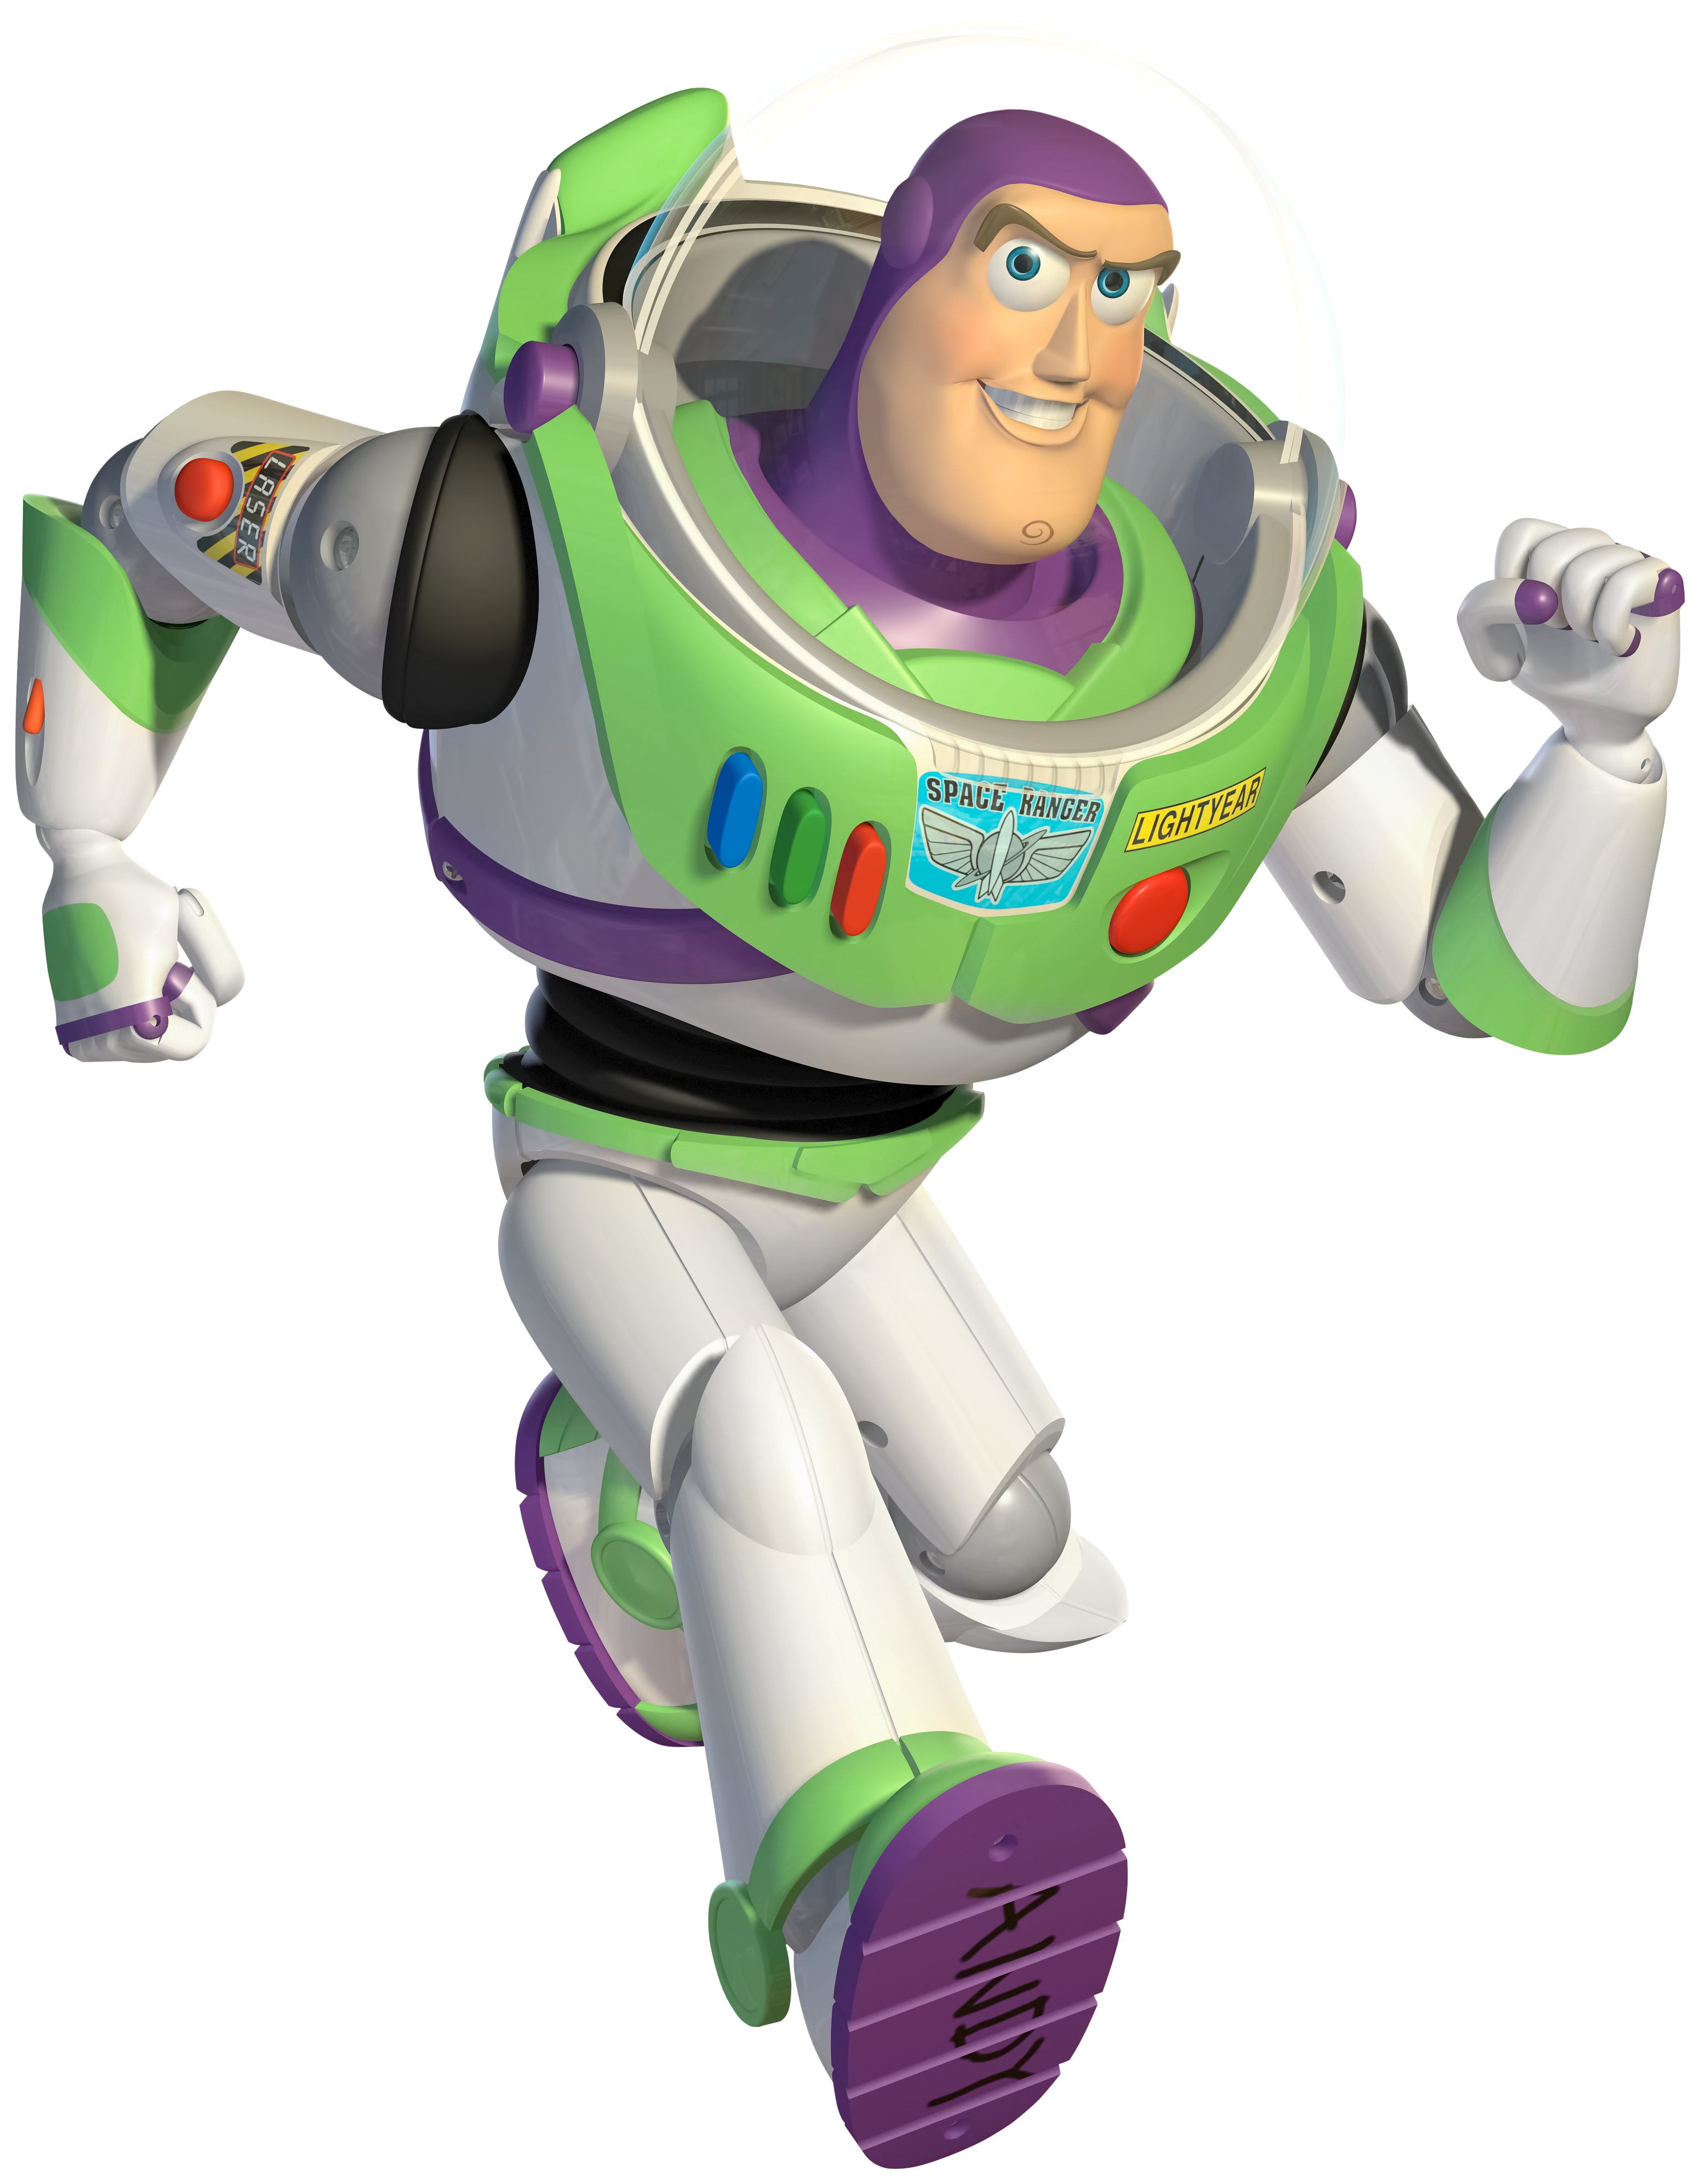 Toy Story Buzz Lightyear Png Clip Art Image Gallery Yopriceville High Quality Images And Transparen Toy Story Buzz Lightyear Toy Story Buzz Buzz Lightyear